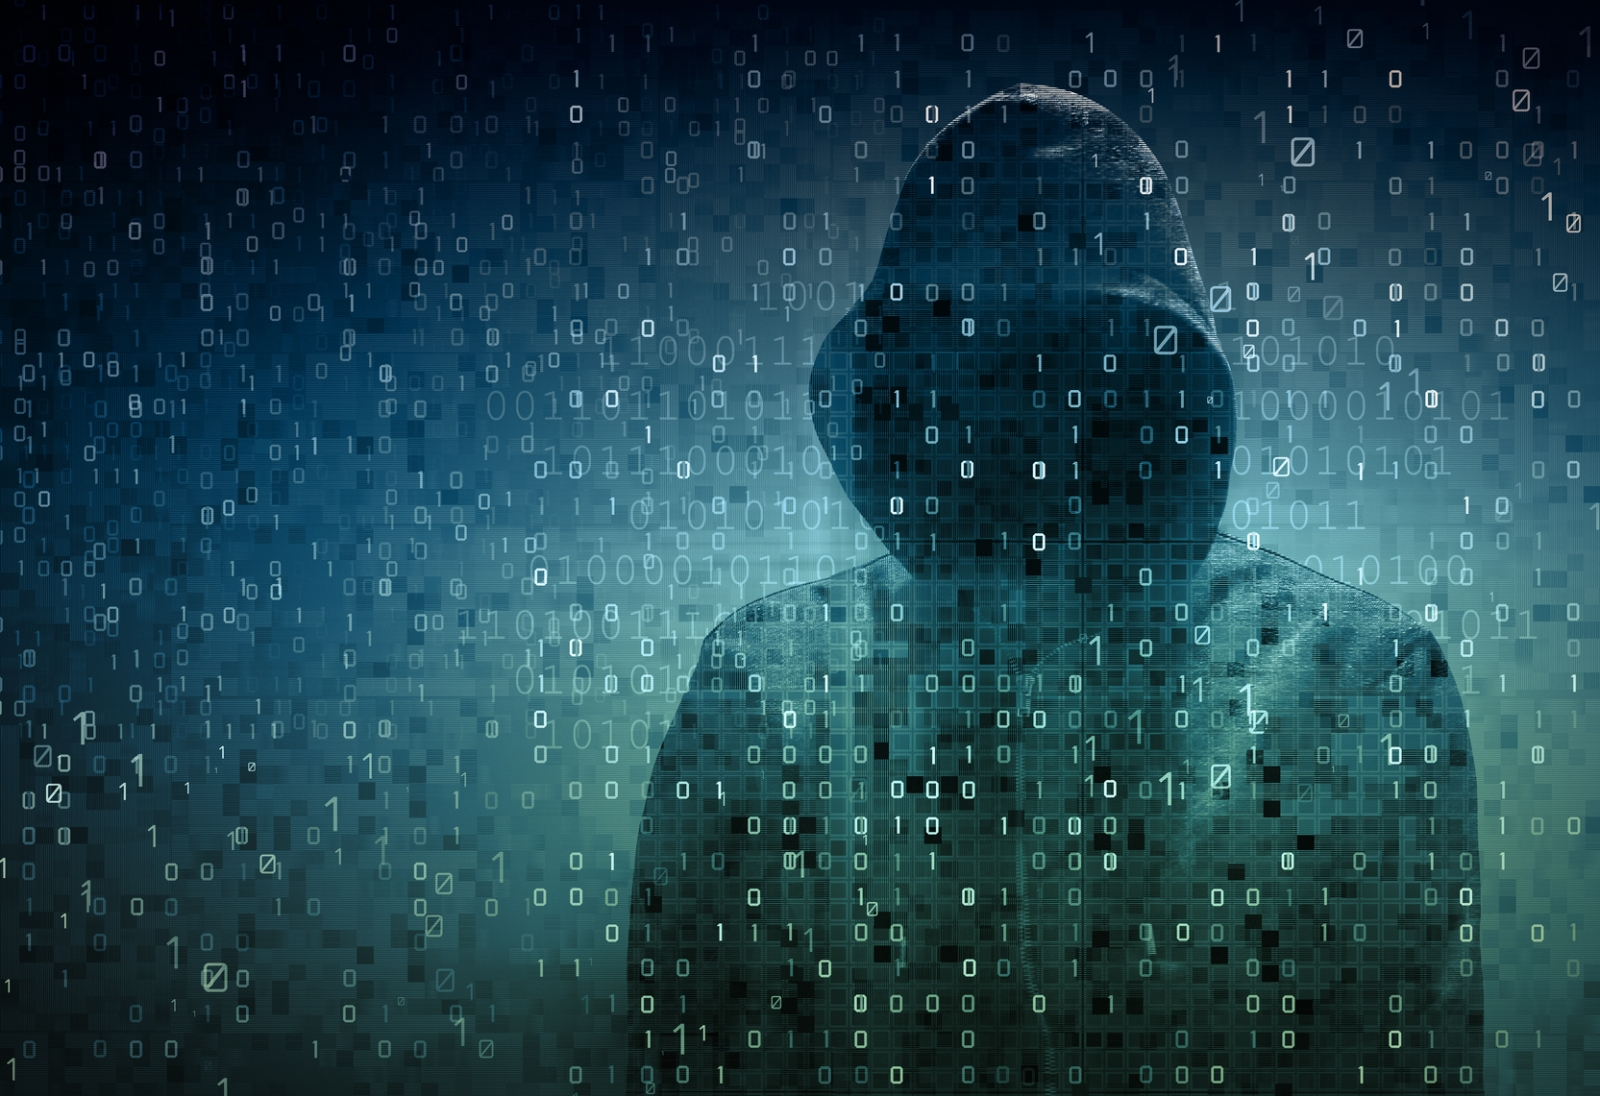 ghostsec opisis anonymous isis hackers